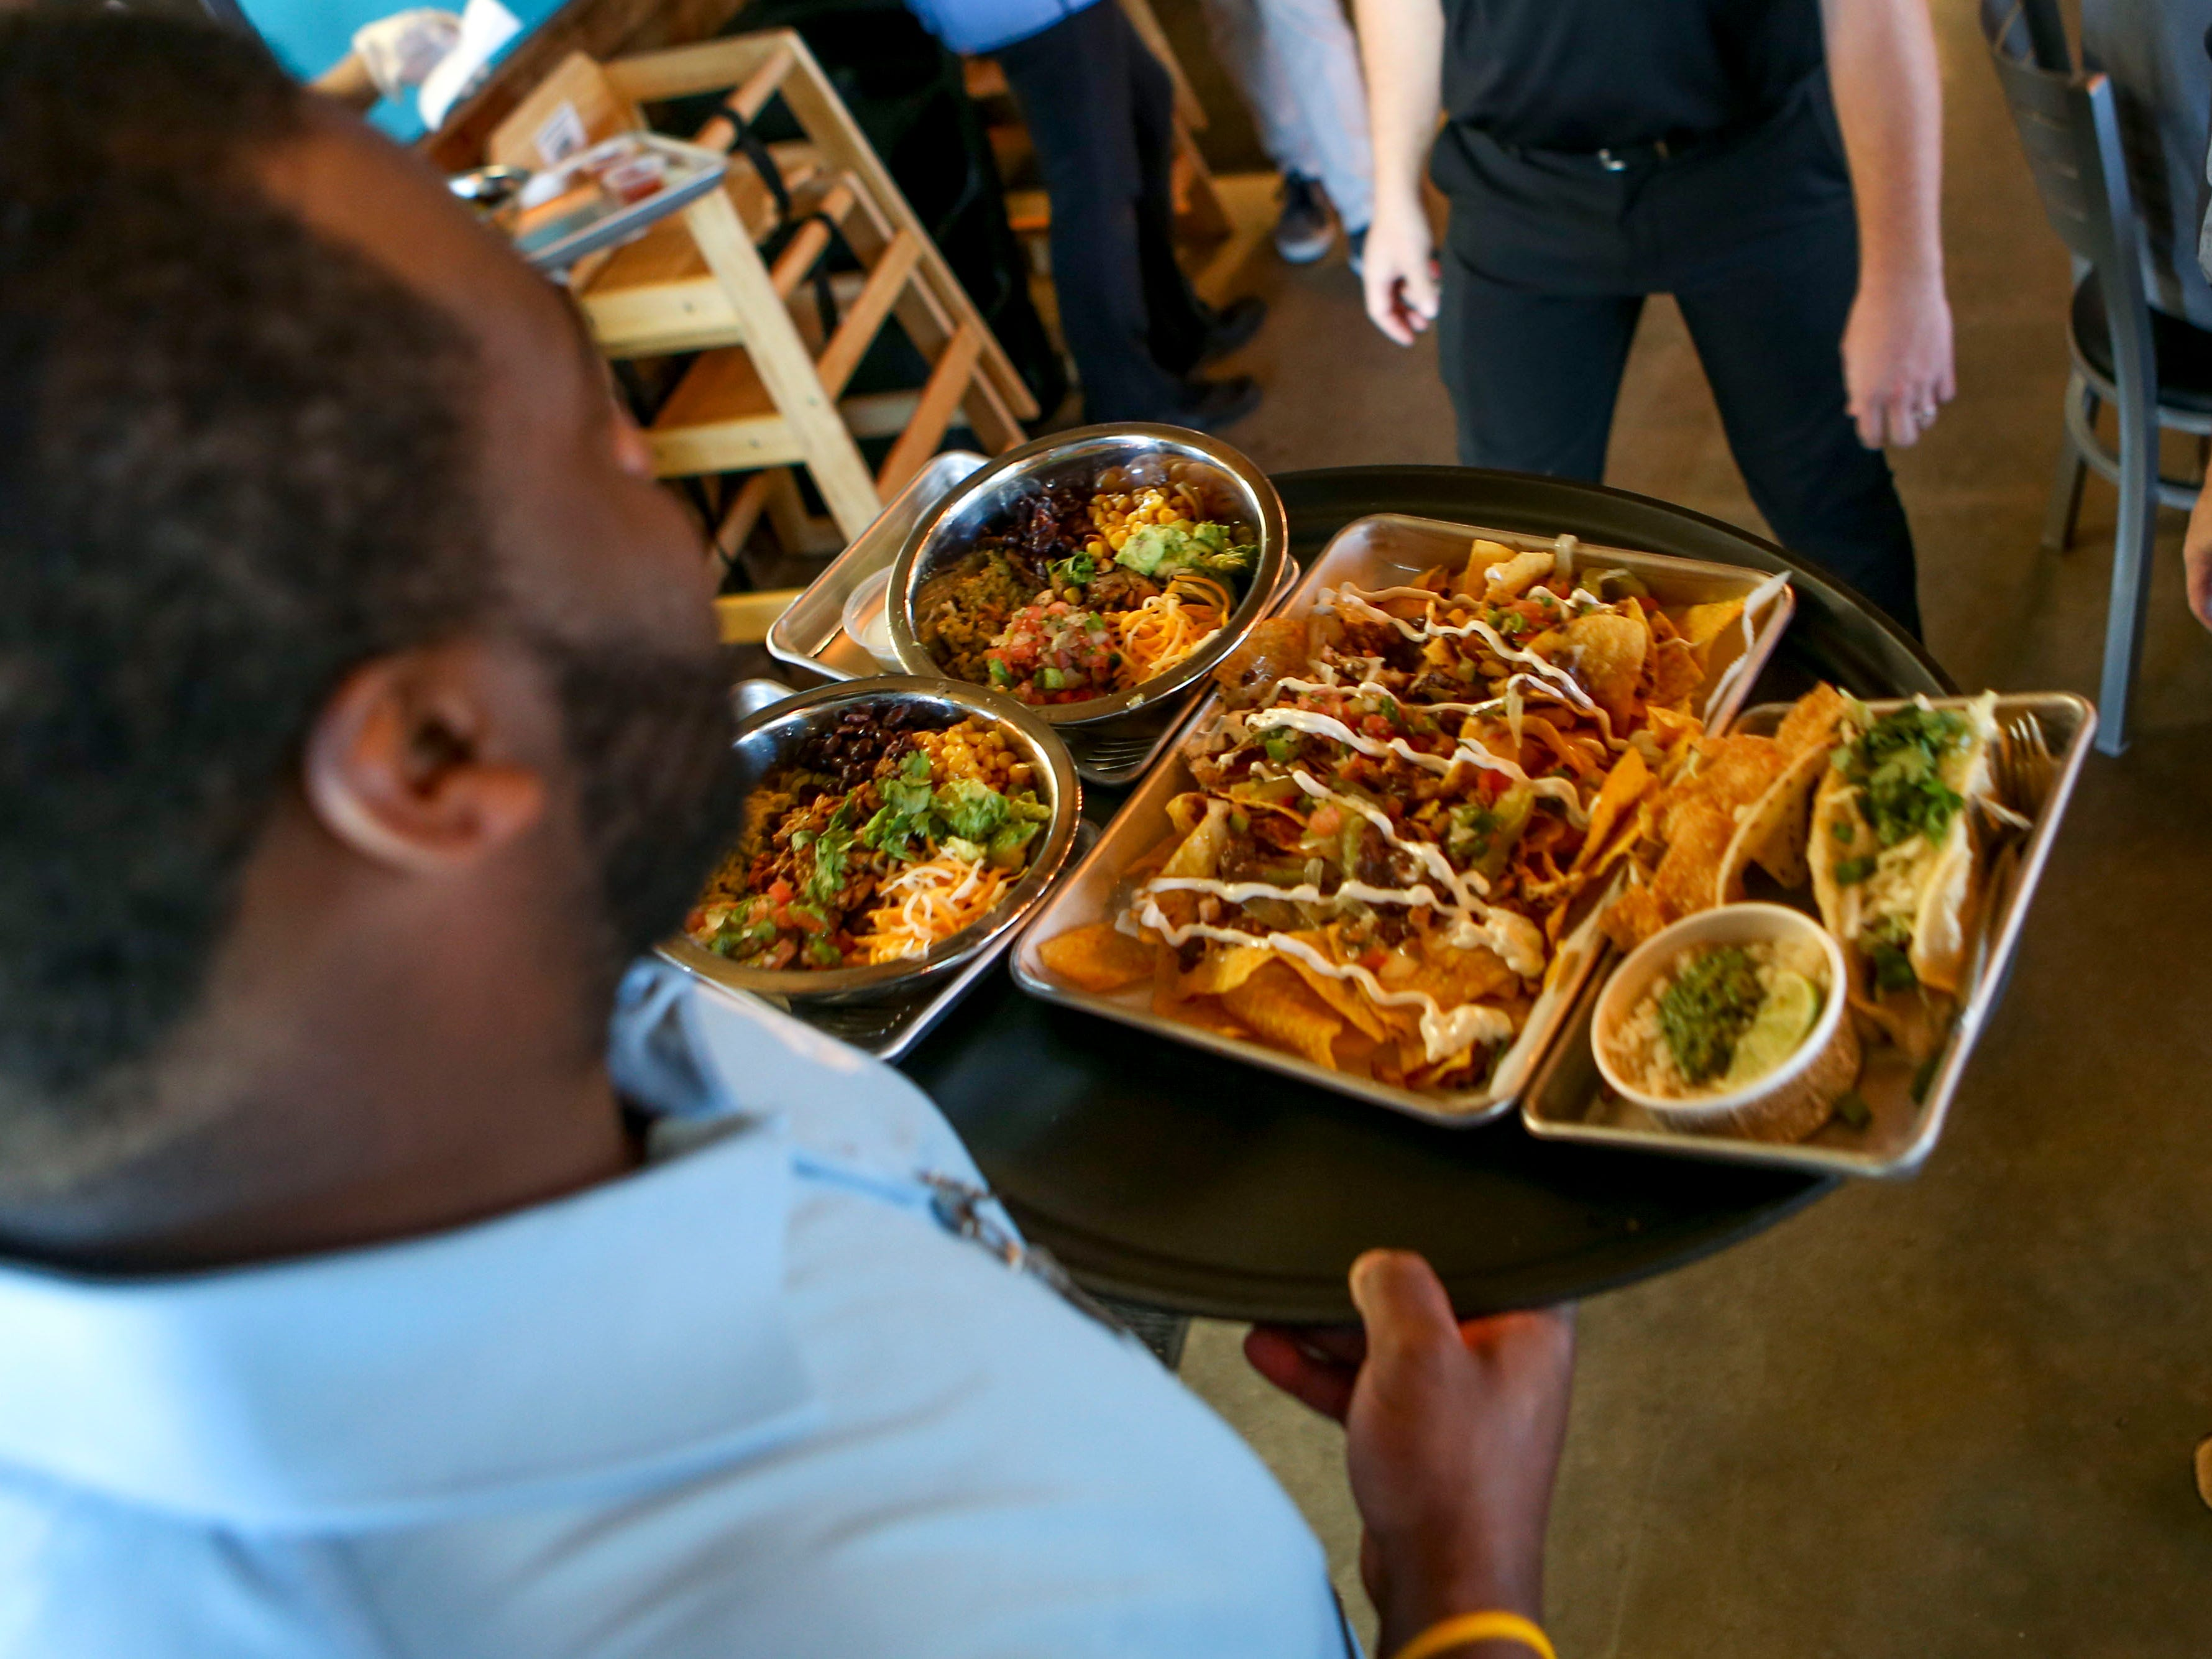 An employee presents a meal to a patron during the soft opening at Tacos 4 Life, a new restaurant in Jackson, Tenn., on Monday, Oct. 29, 2018.